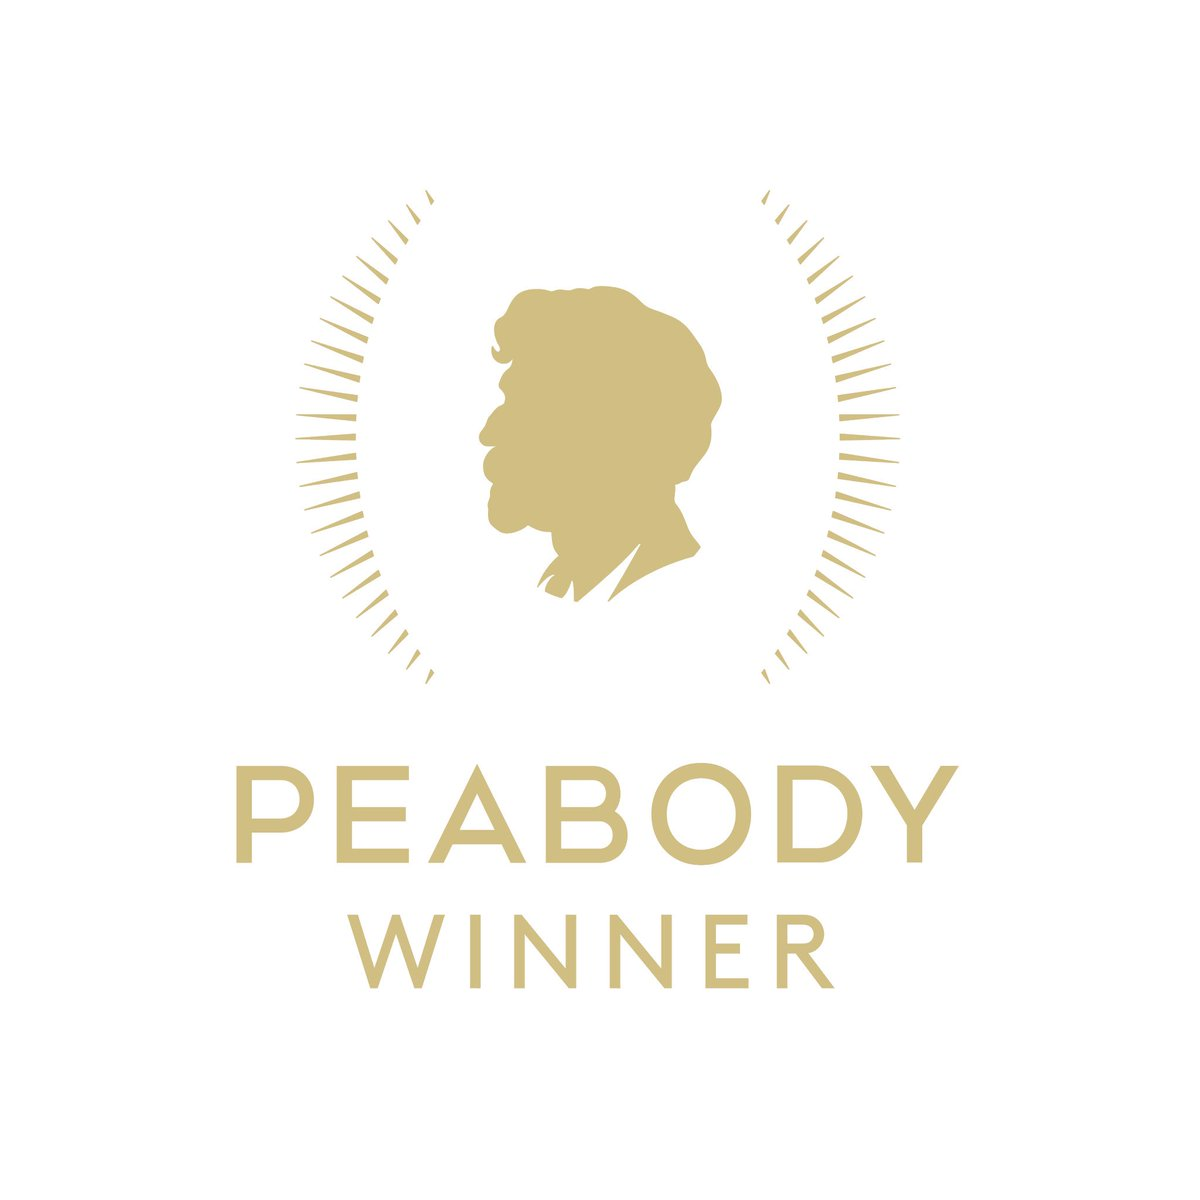 """The logo for the Peabody Awards. A gold colored graphic of a profile of a face with text that reads """"Peabody Winner"""" underneath"""